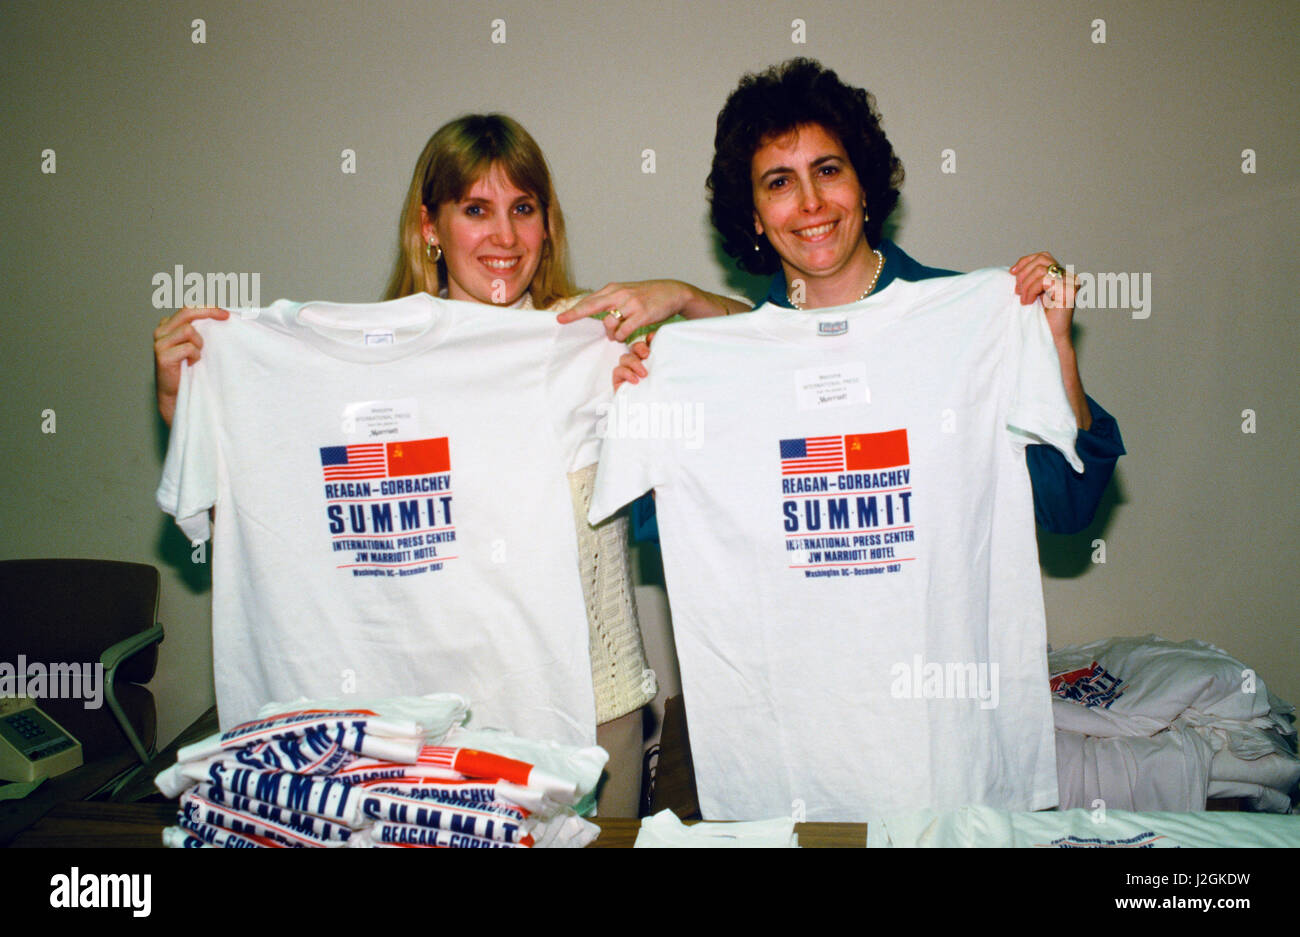 Free Tee Shirts given away at the J W Marriott Hotel at the Reagan Gorbachev Summit in December 1987. - Stock Image